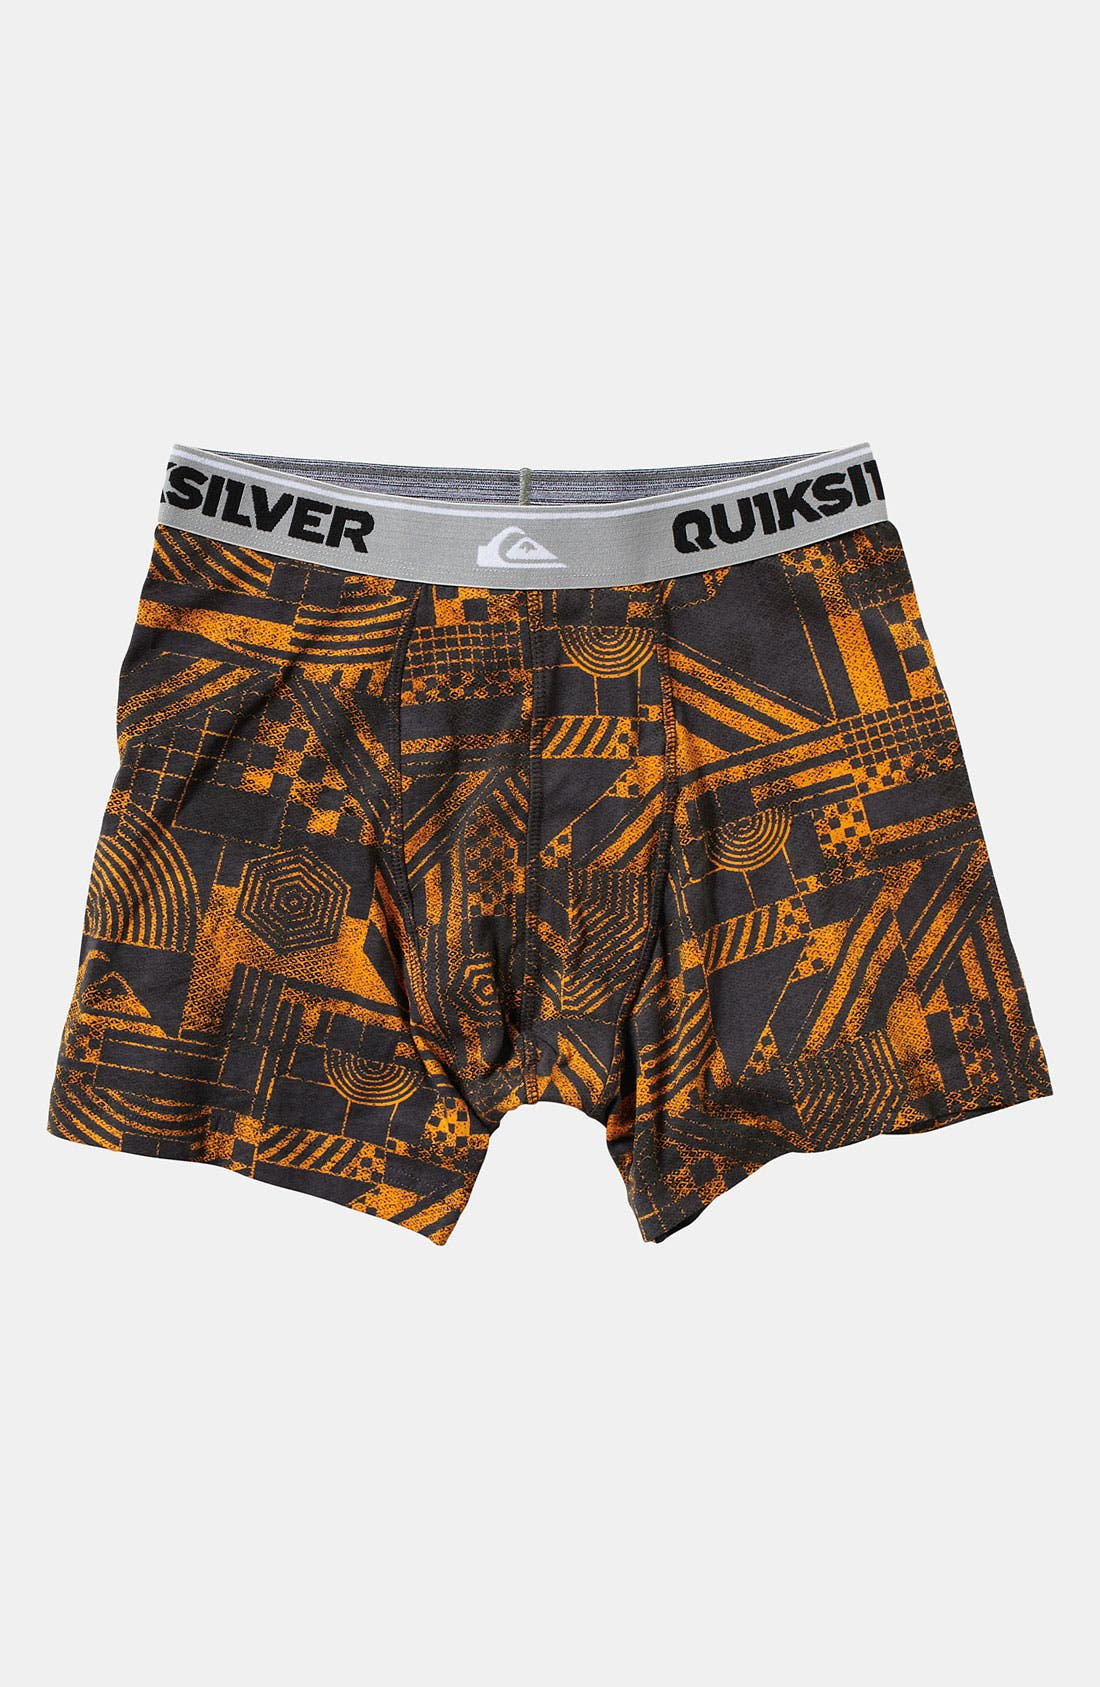 Alternate Image 1 Selected - Quiksilver 'Coconut' Boxer Briefs (Big Boys)